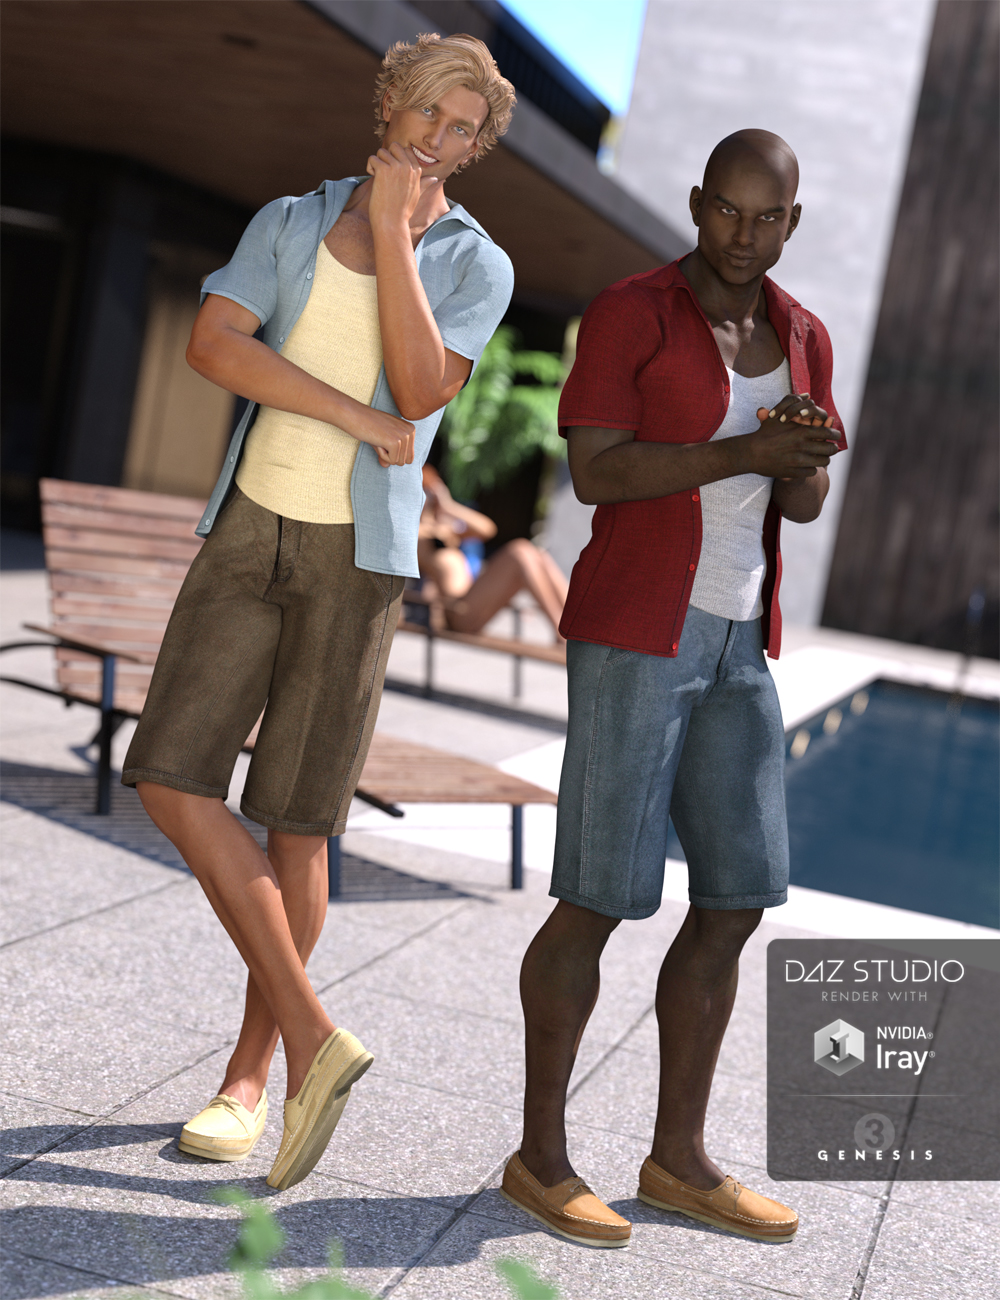 Casual Heat Outfit Textures by: Sarsa, 3D Models by Daz 3D